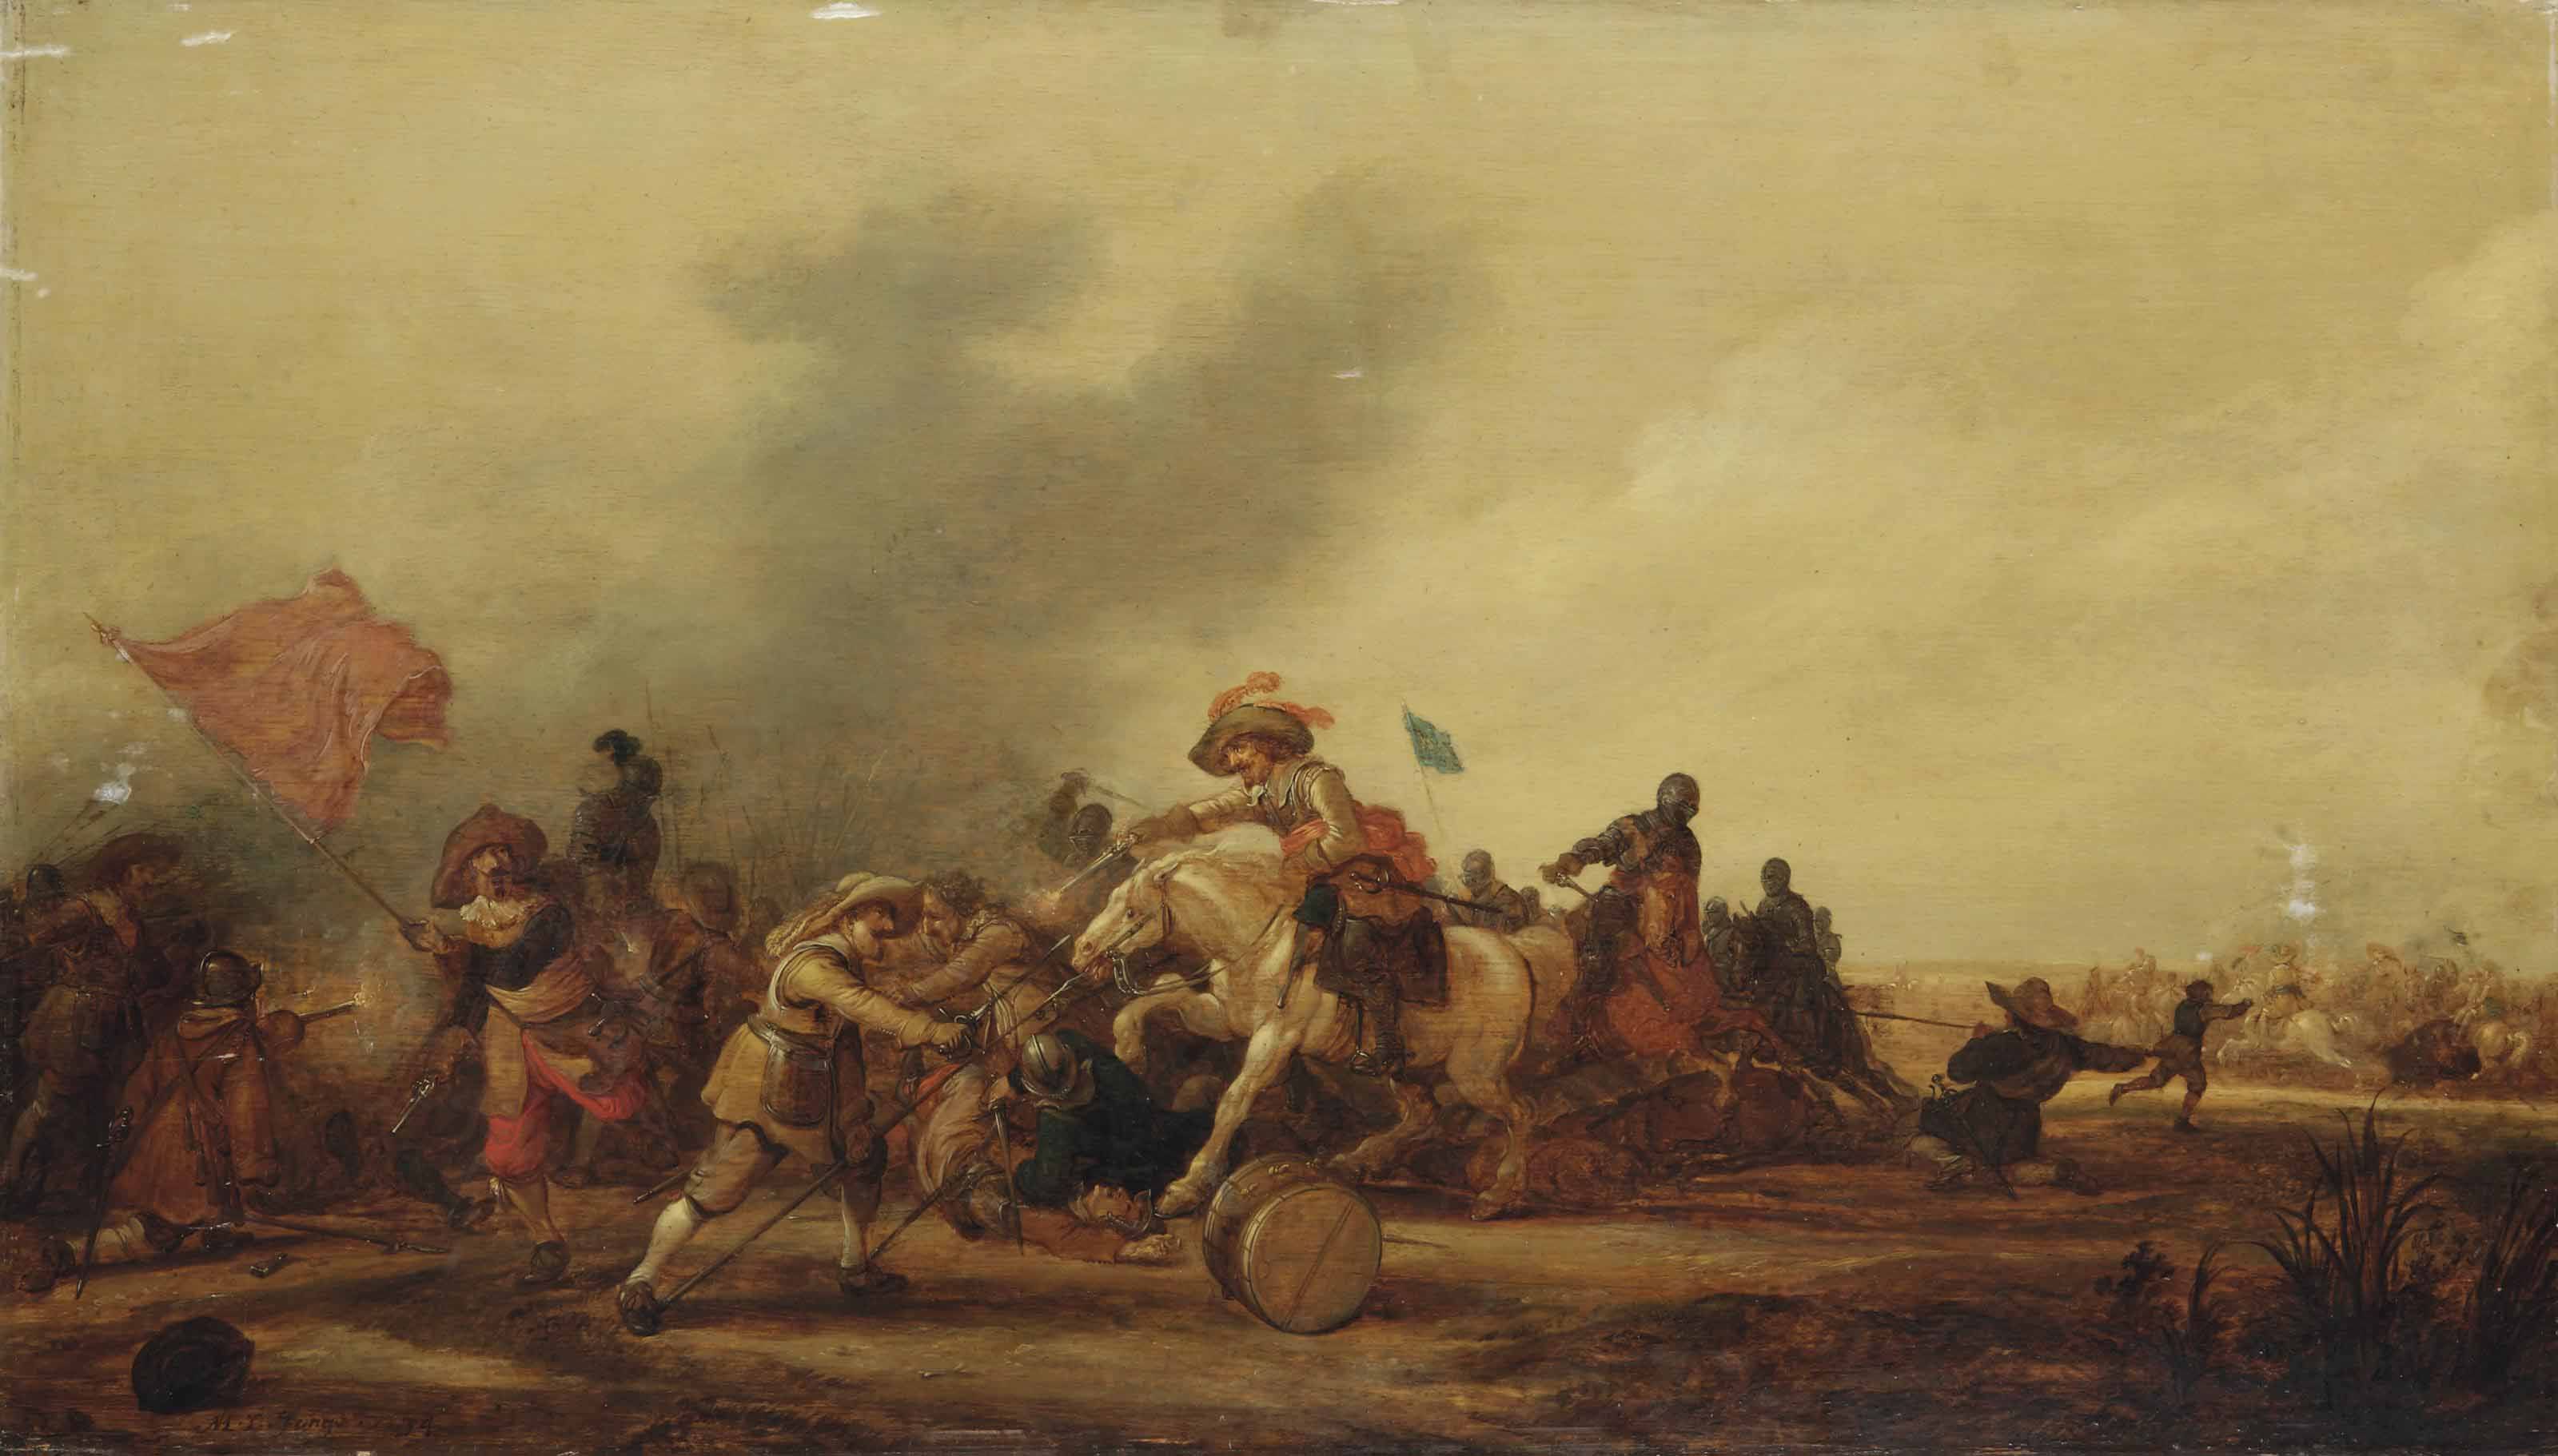 An engagement between cavalry and footsoldiers